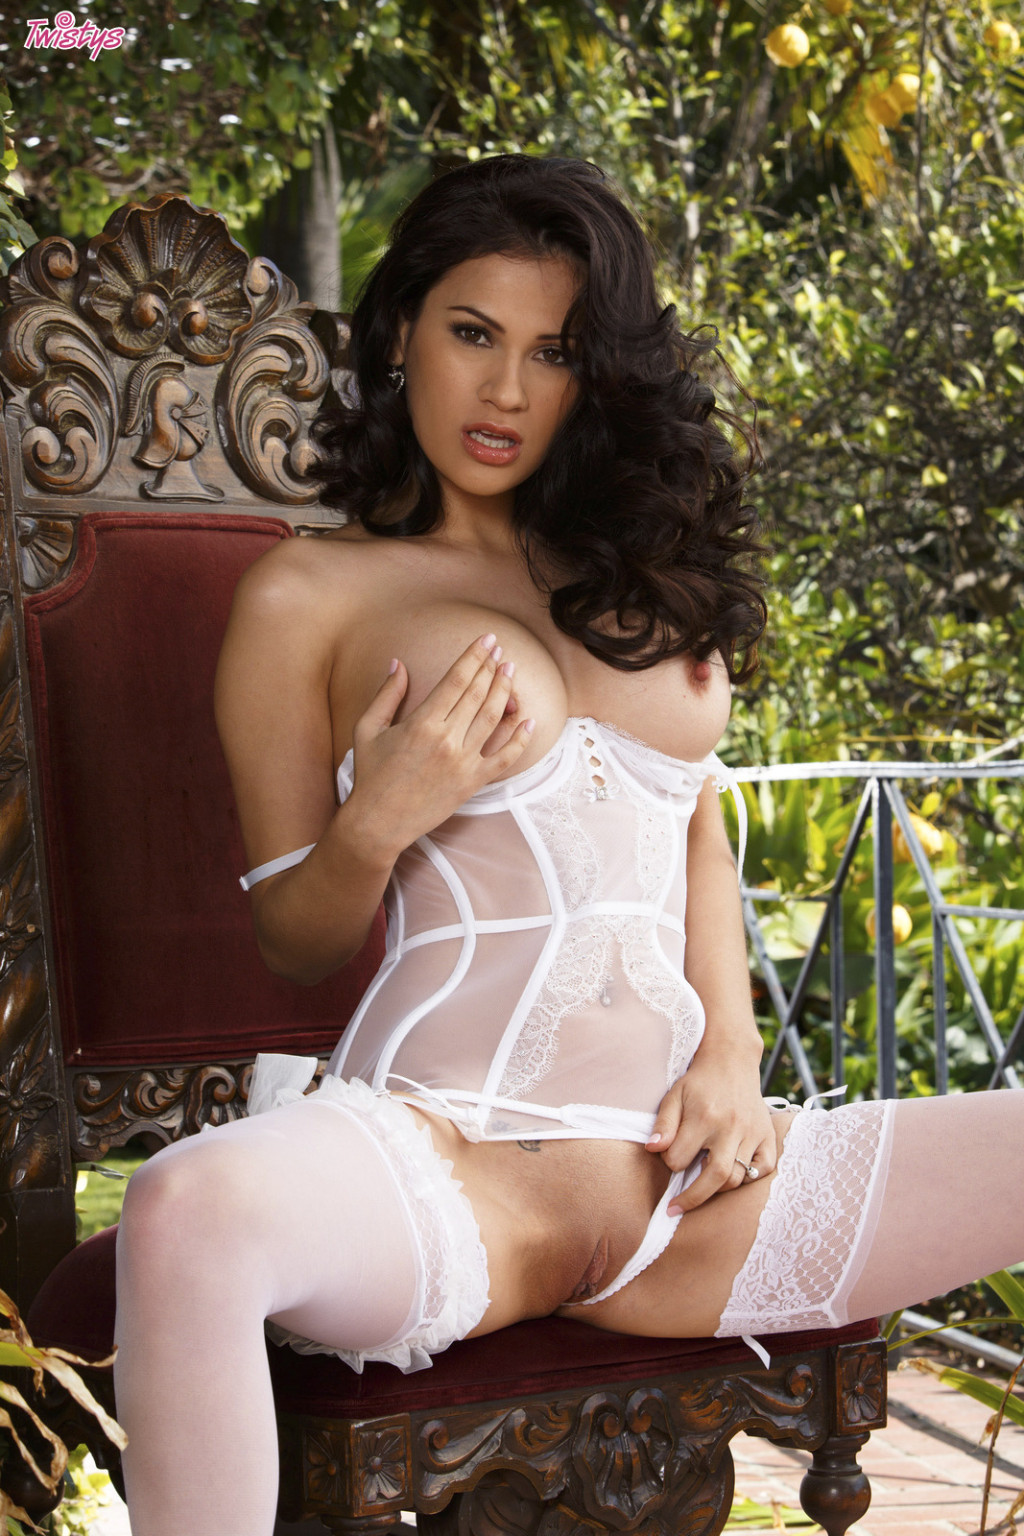 Vanessa veracruz shows off her exquisite body in underclothes